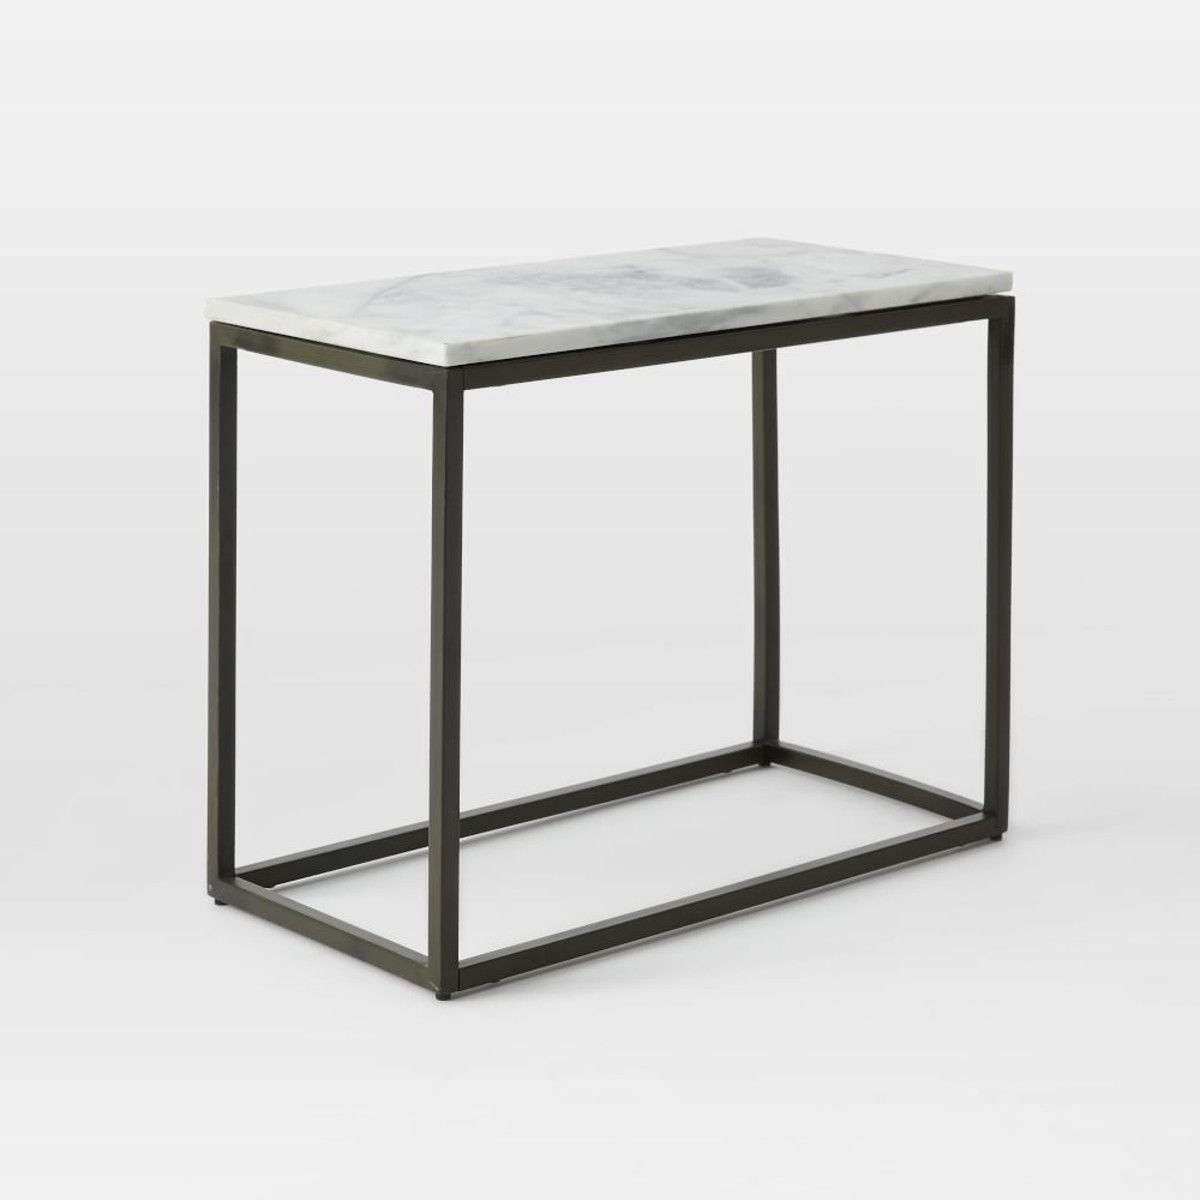 Thin Side Table box frame narrow side table - marble | current obsessions